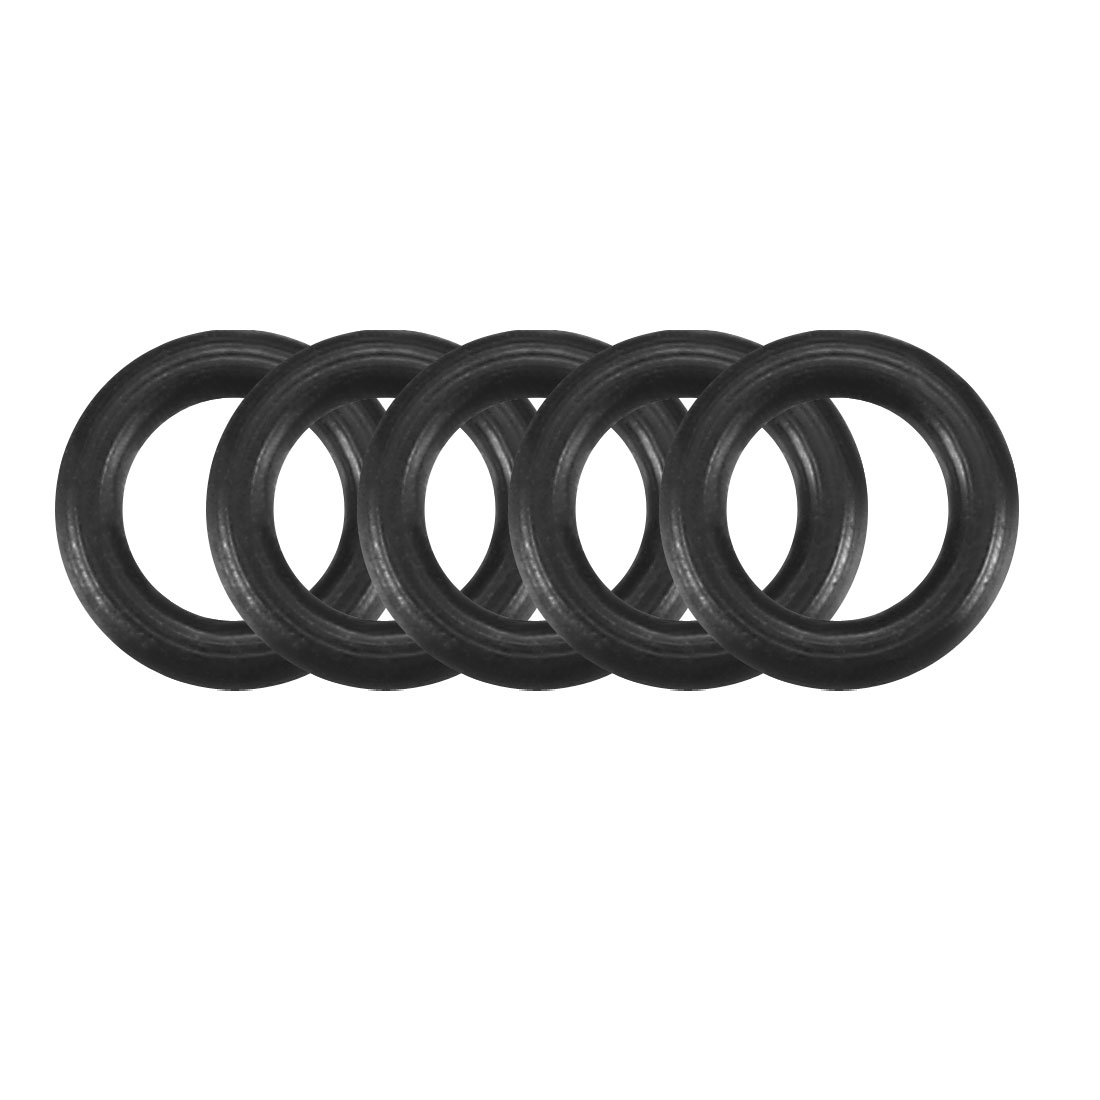 5 x 1mm Black Rubber Sealing O Ring Seal Washer Grommets 50 Pcs